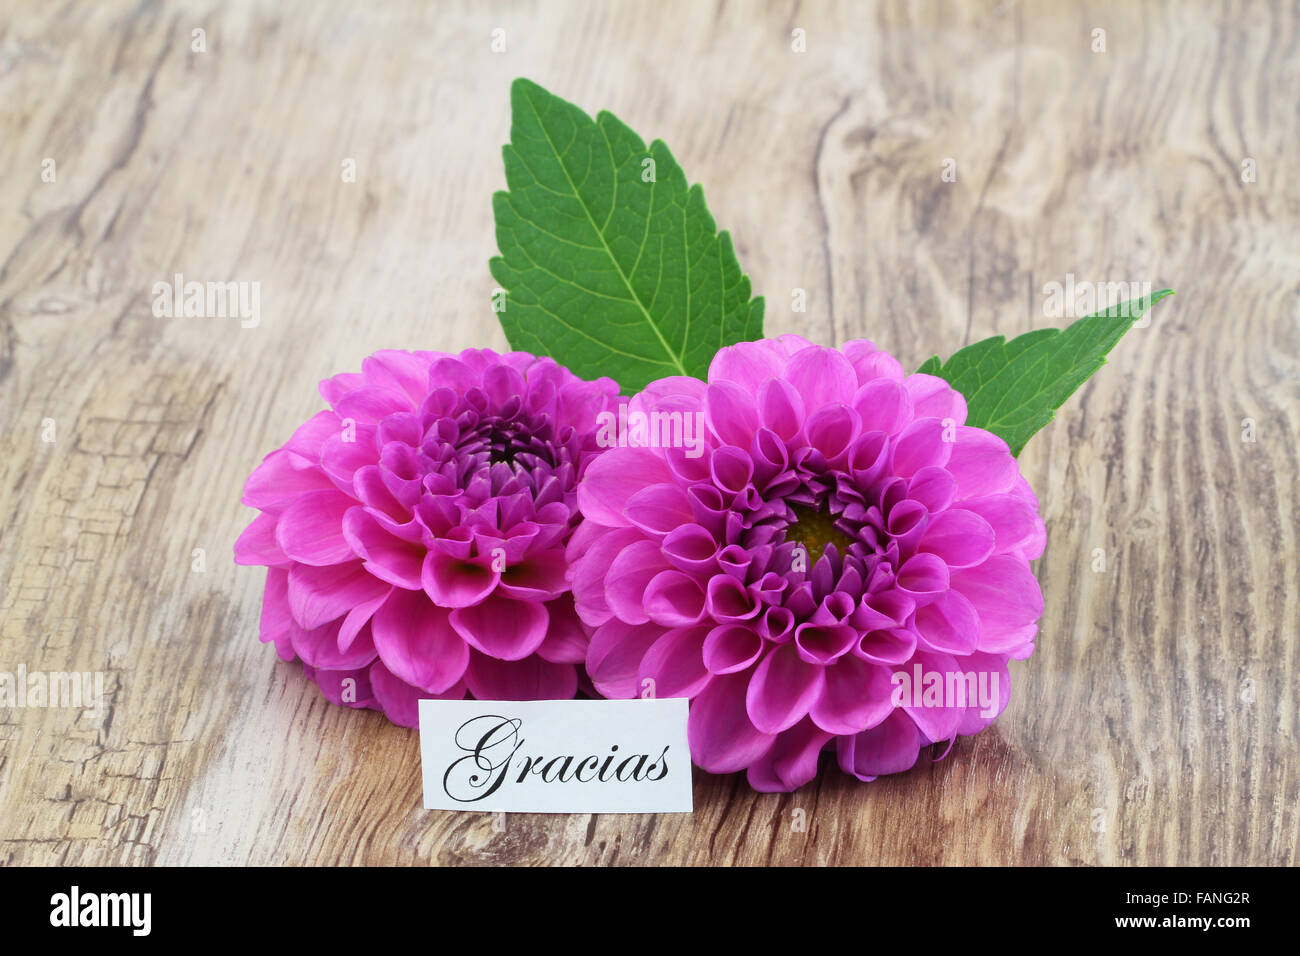 Gracias Which Means Thank You In Spanish Card With Pink Dahlia